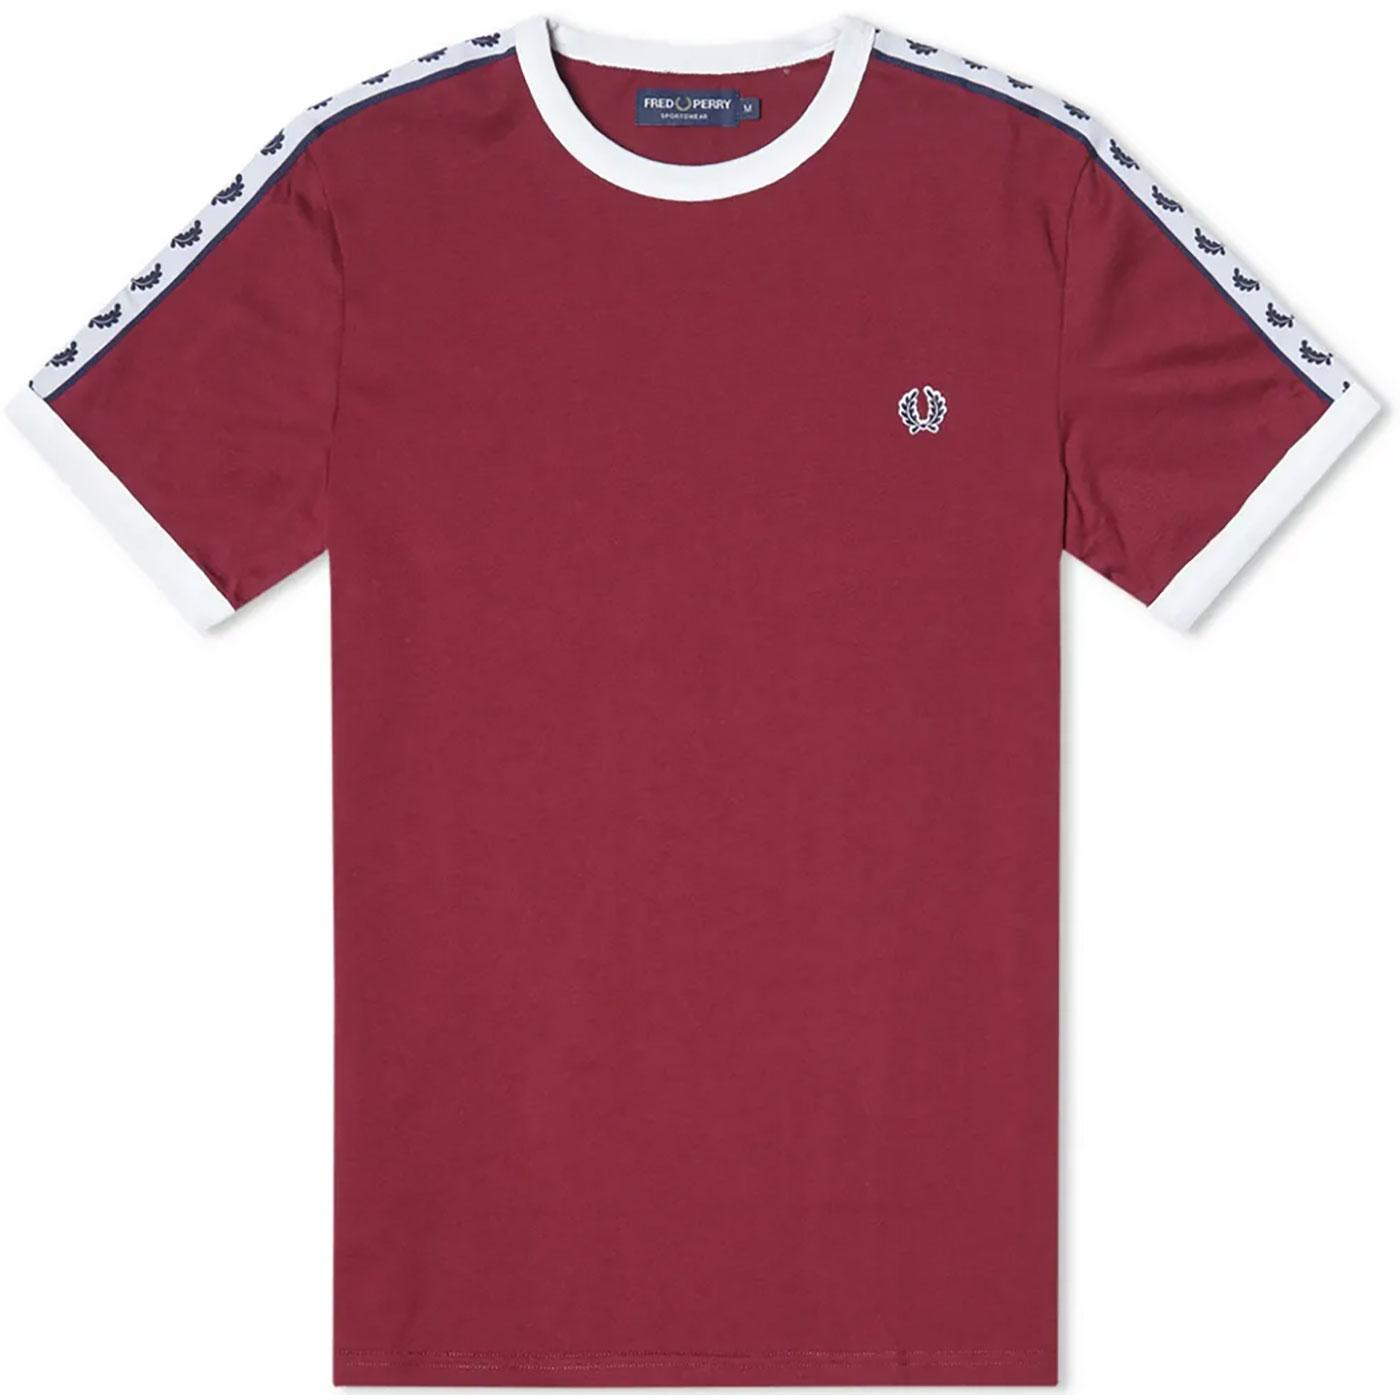 FRED PERRY Men's Retro Taped Sleeve Ringer Tee P